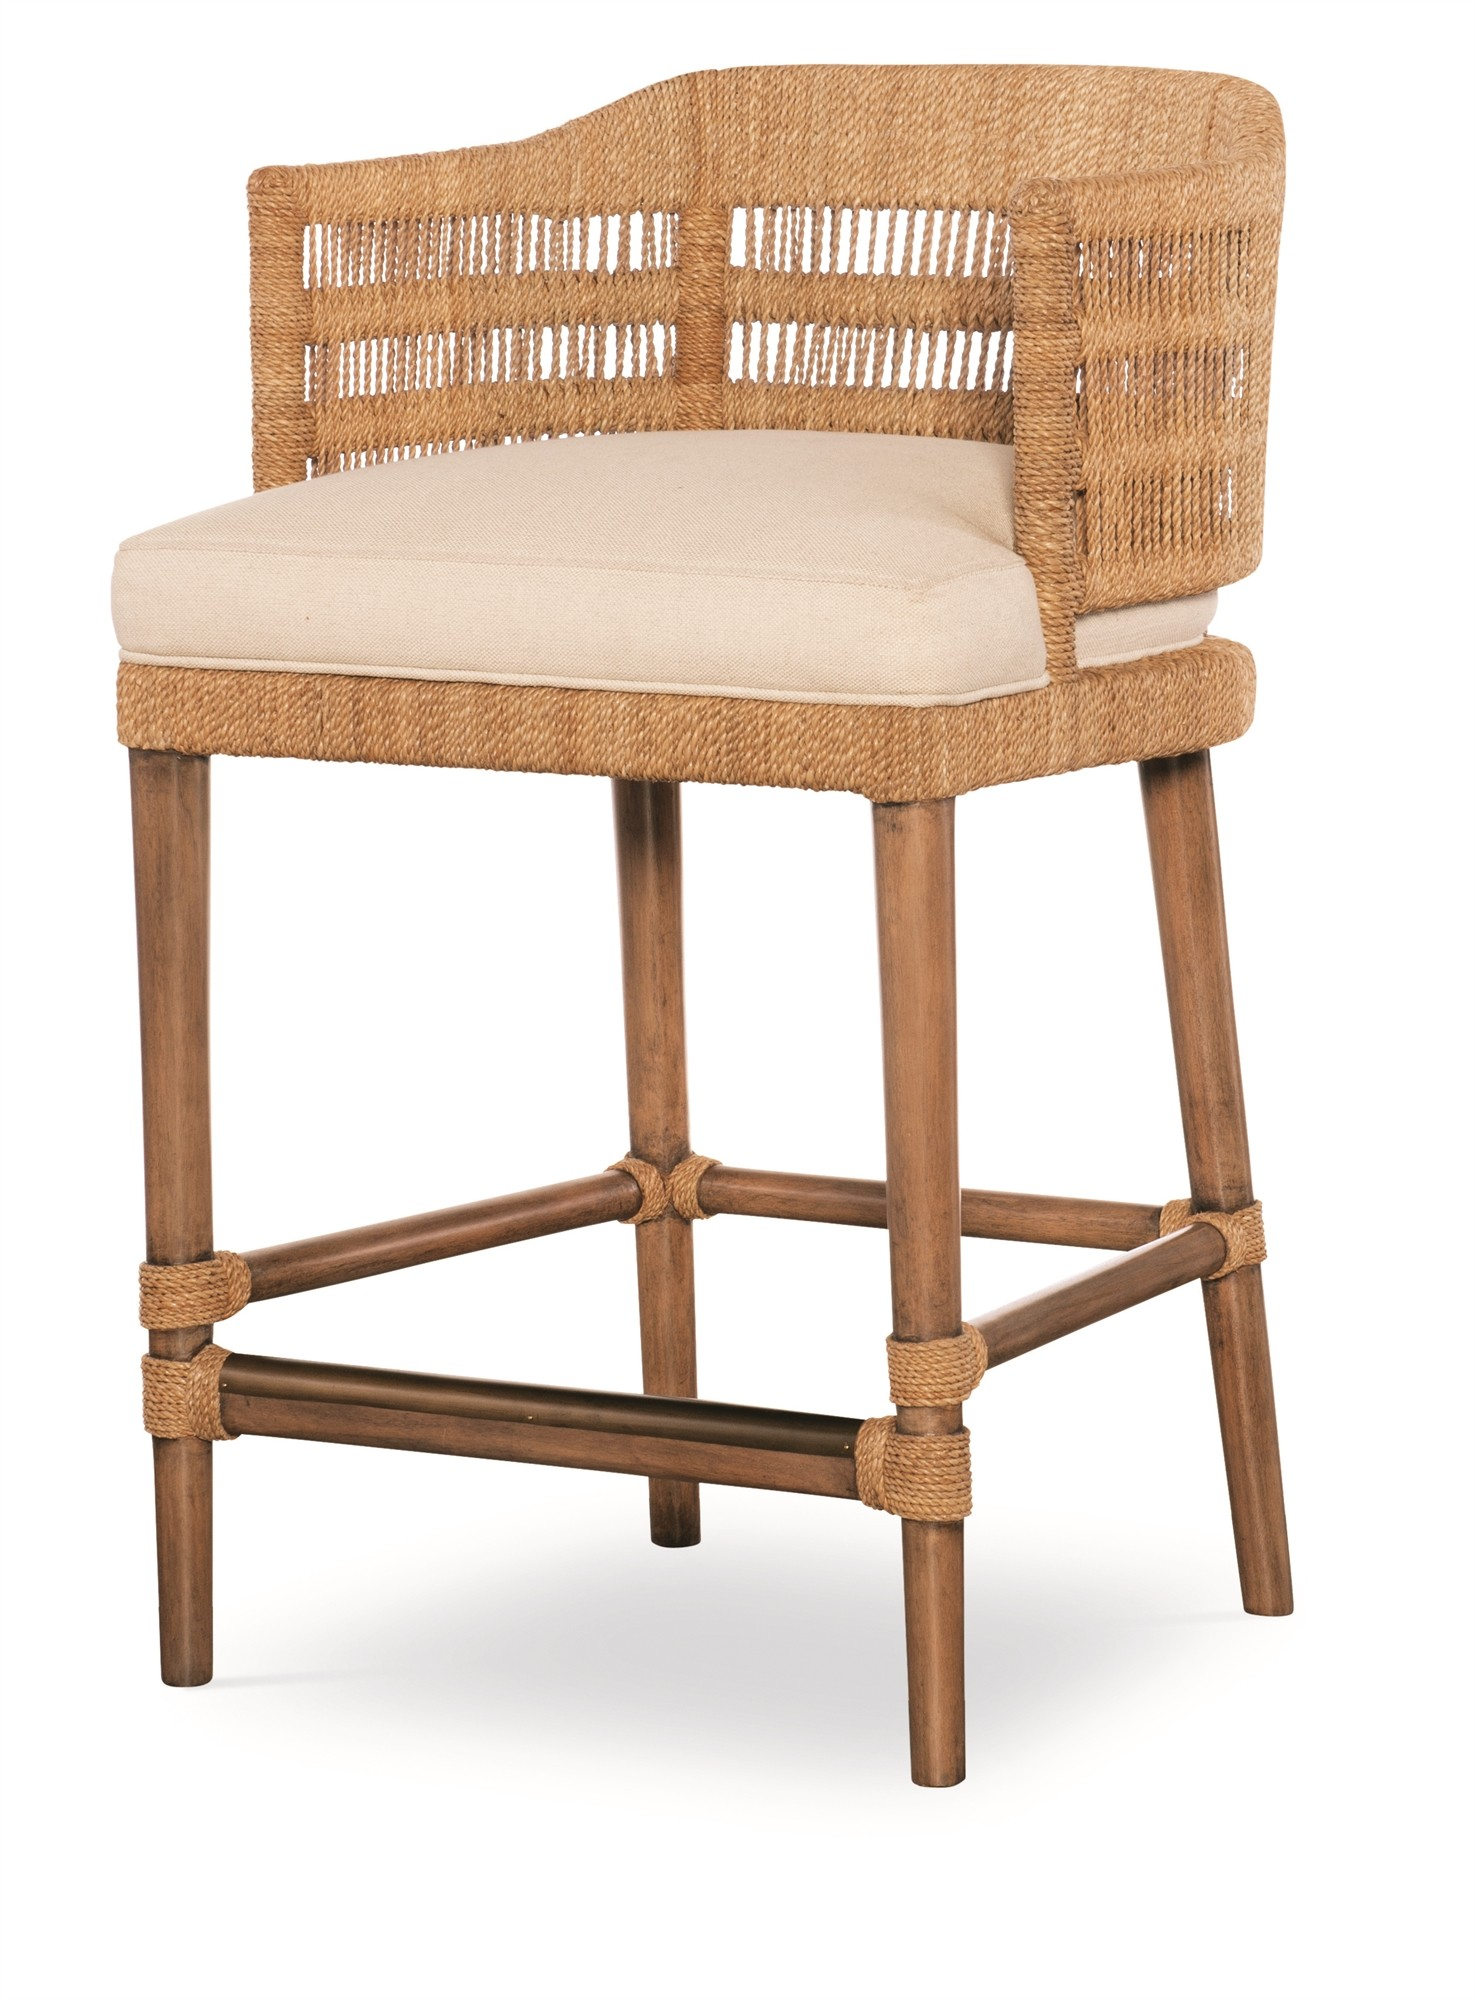 Boca Counter Stool - Natural/Flax